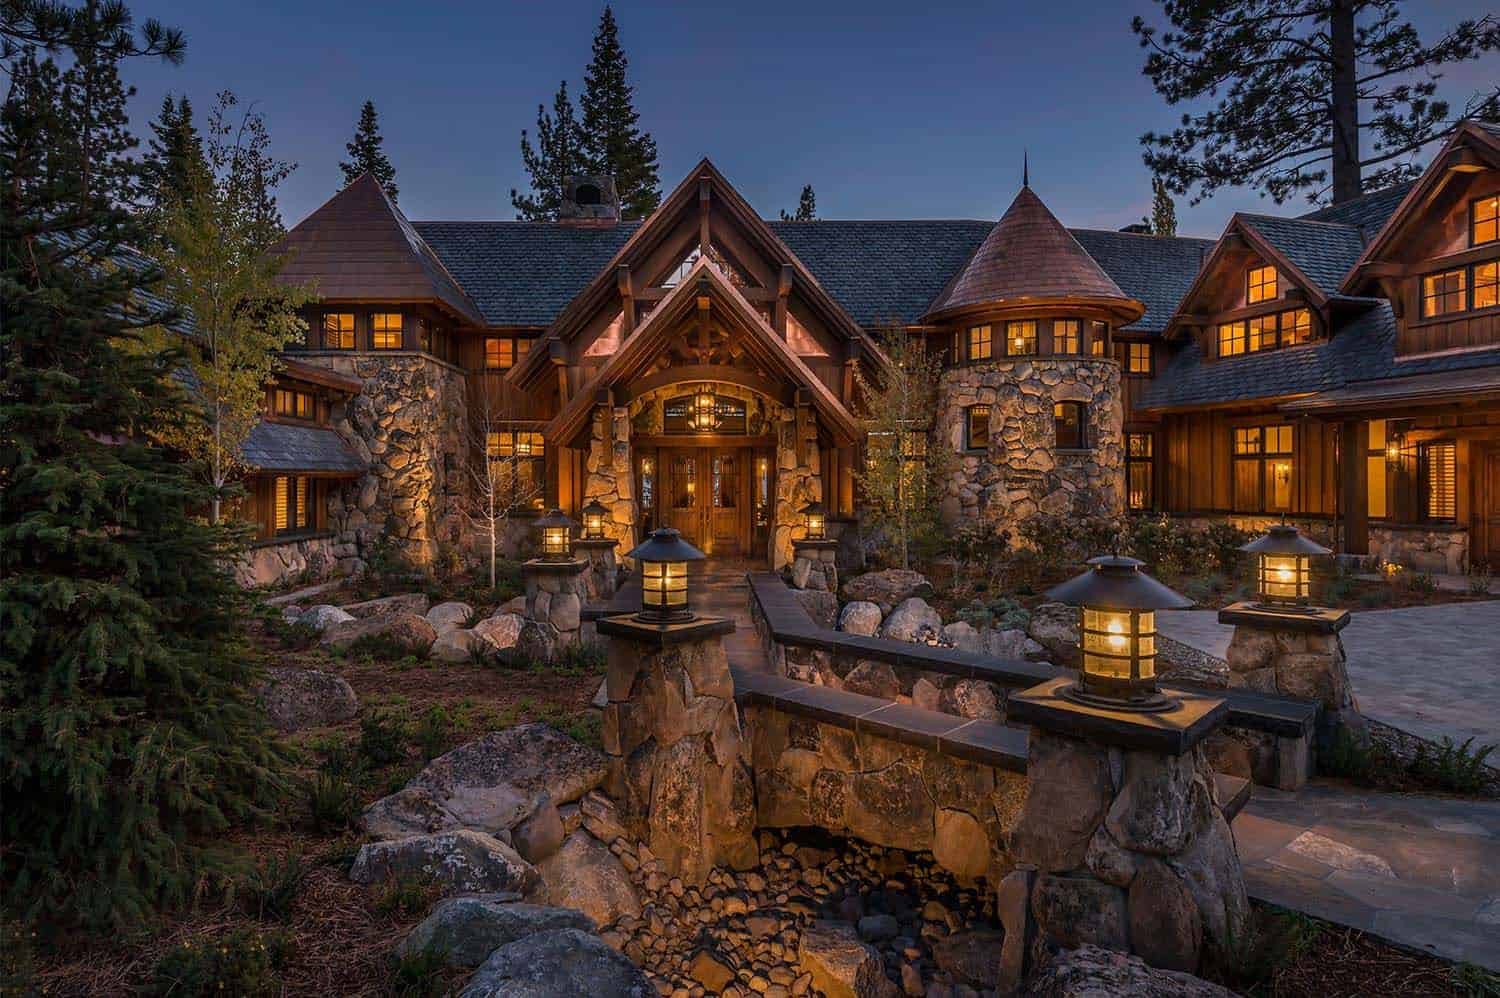 Stunning Lodge Style Home With Old World Luxury